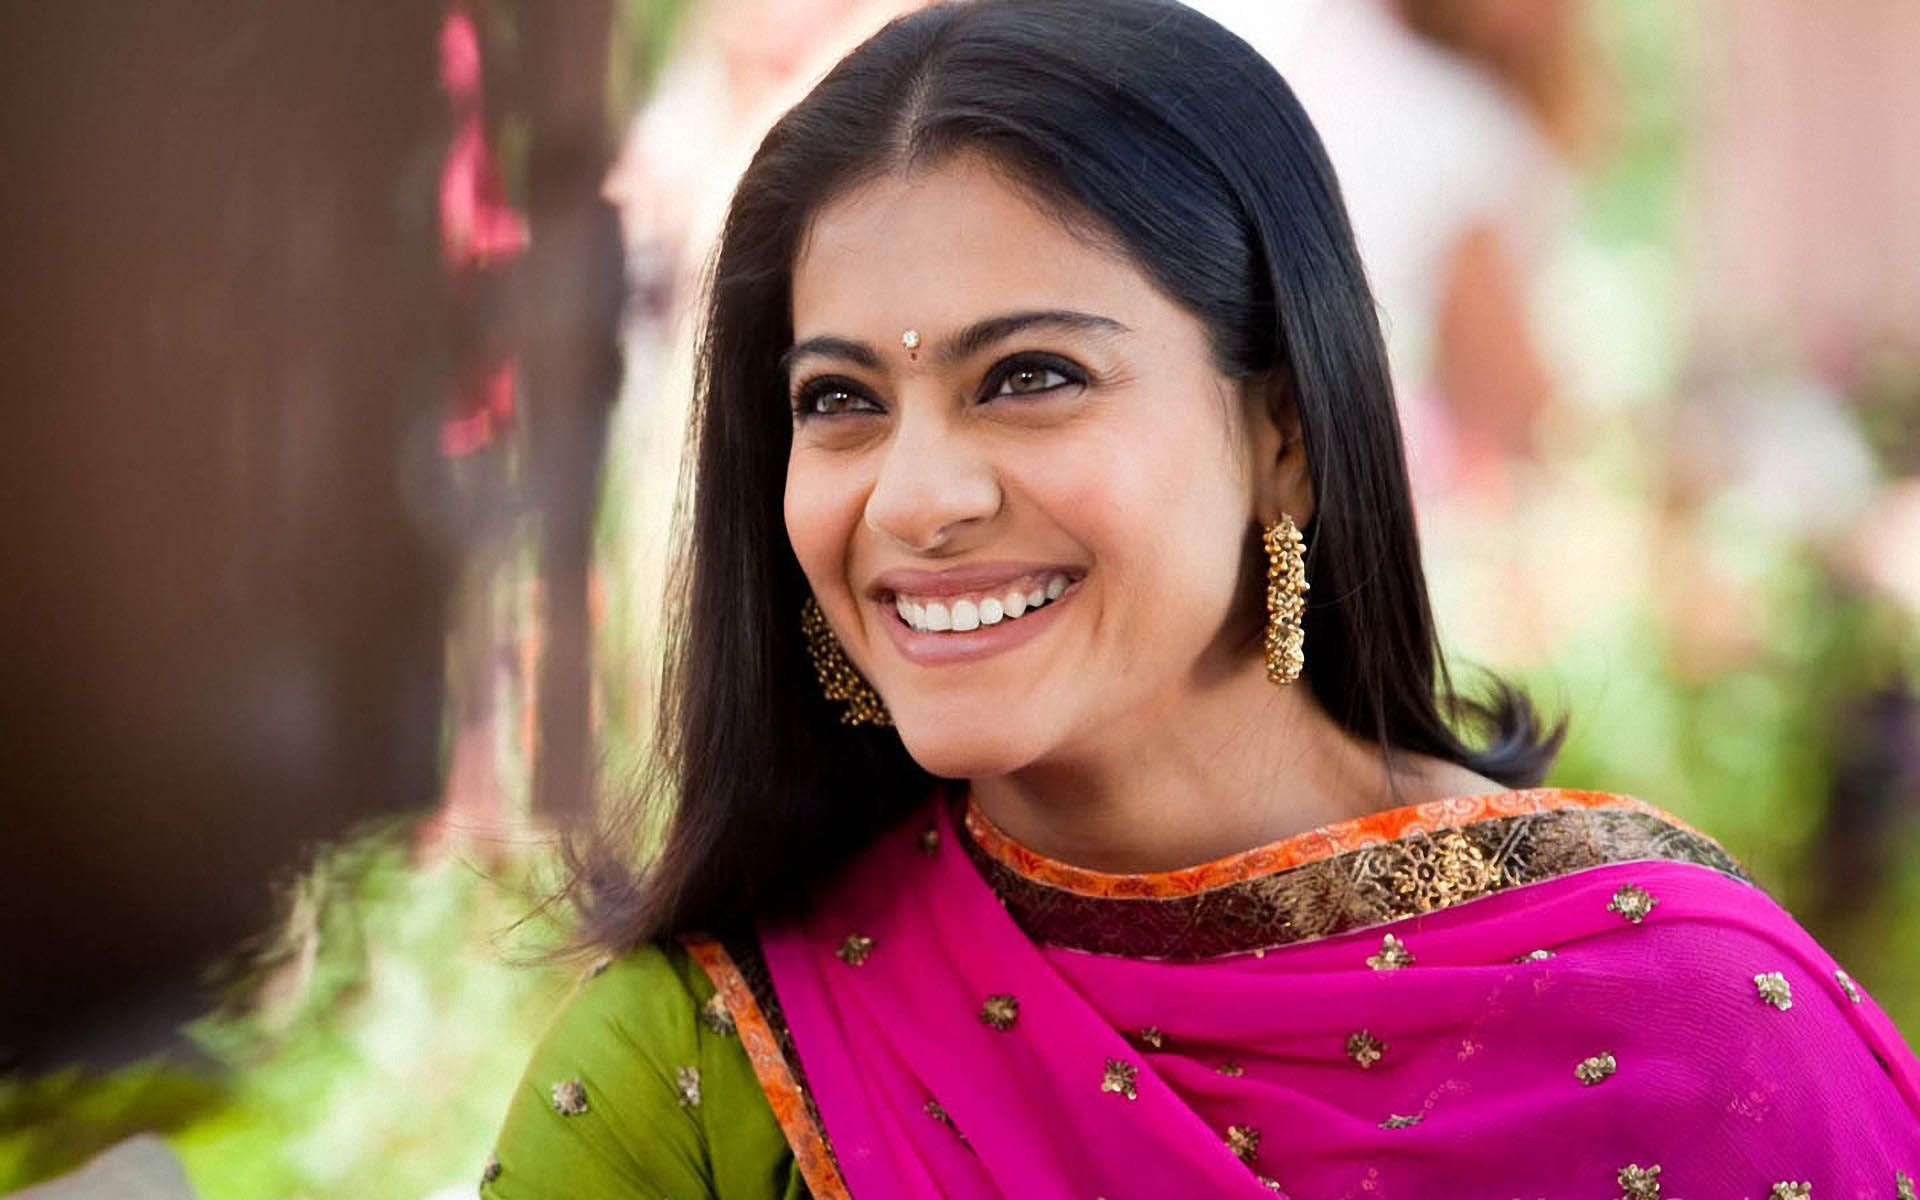 Hd wallpaper kajol - Watch And Download Free Kajol Hd Wallpapers Here A Lot Of Best Collection Of Best Hd Wallpapers Images Of Kajol Best Wallpapers Lvlywallpaper